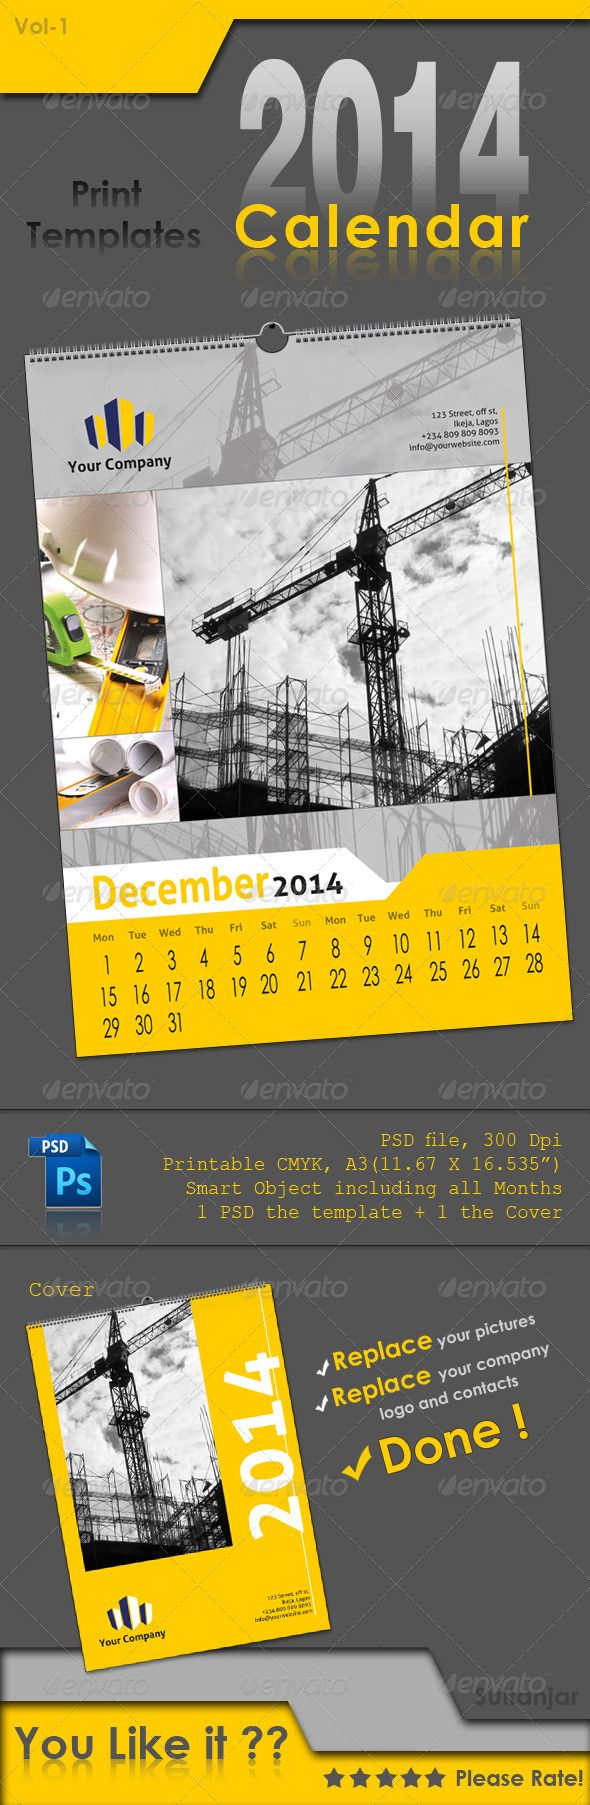 Calendar Sizes Ideas : Best ideas about construction company names on